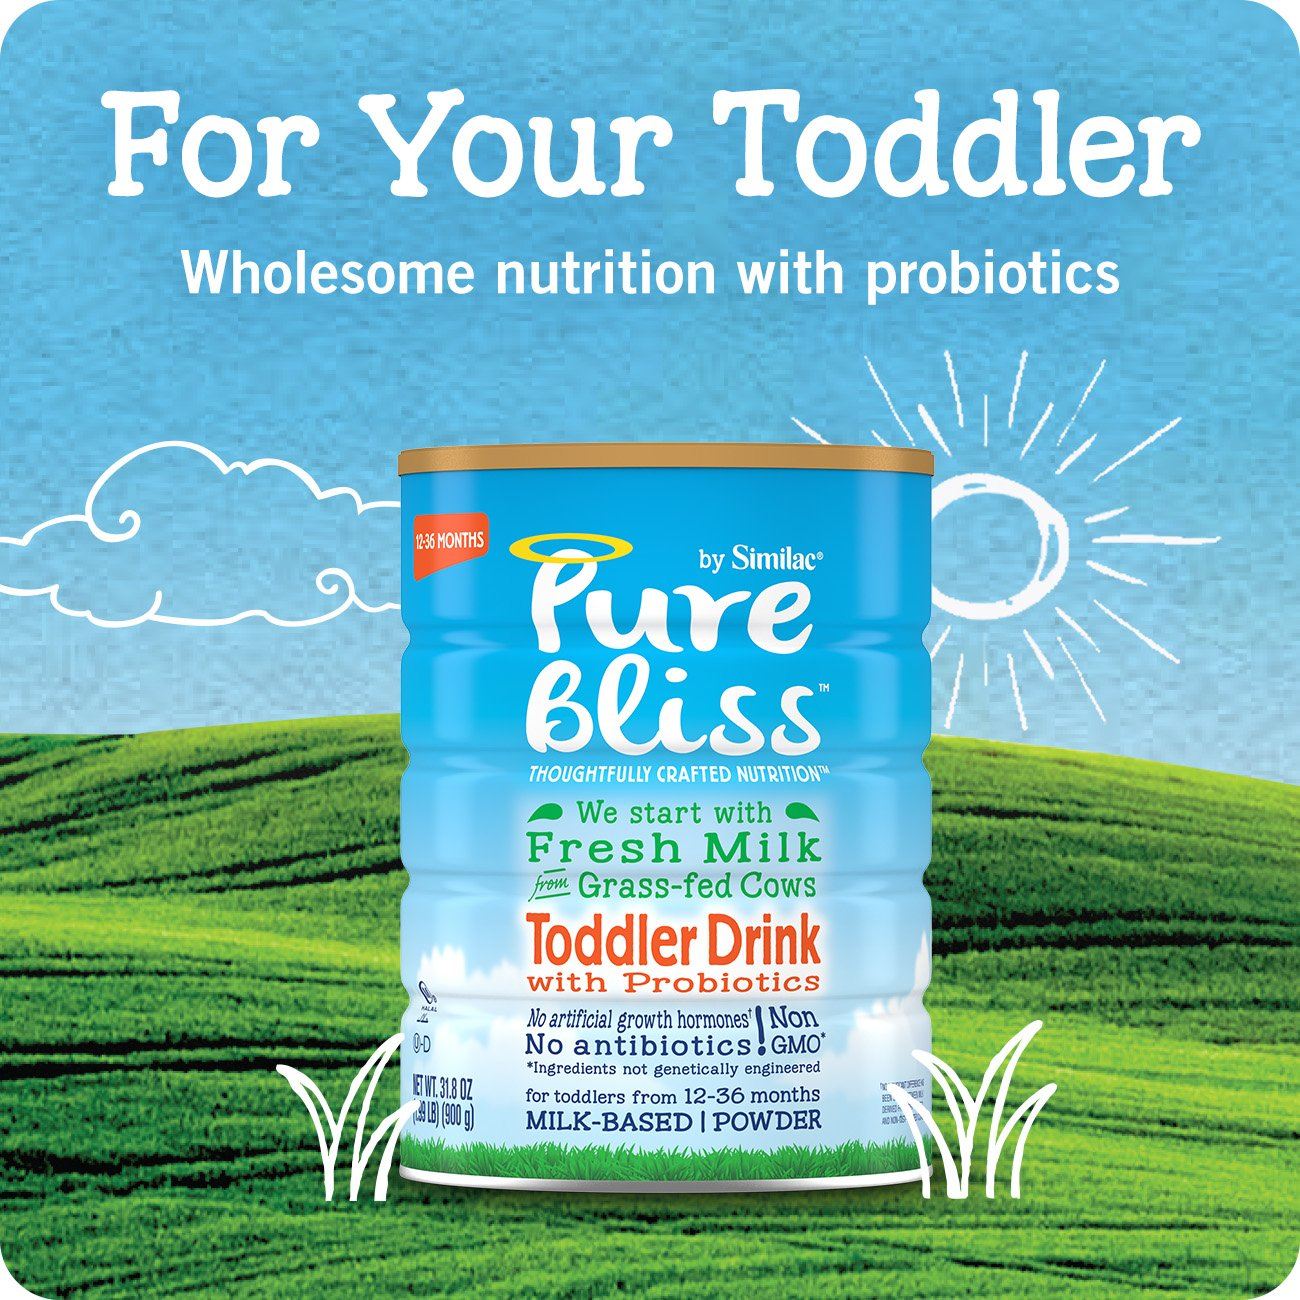 Pure Bliss by Similac Toddler Drink with Probiotics, Starts with Fresh Milk from Grass-Fed Cows, 12.4 ounces (Pack of 4) by Similac (Image #5)